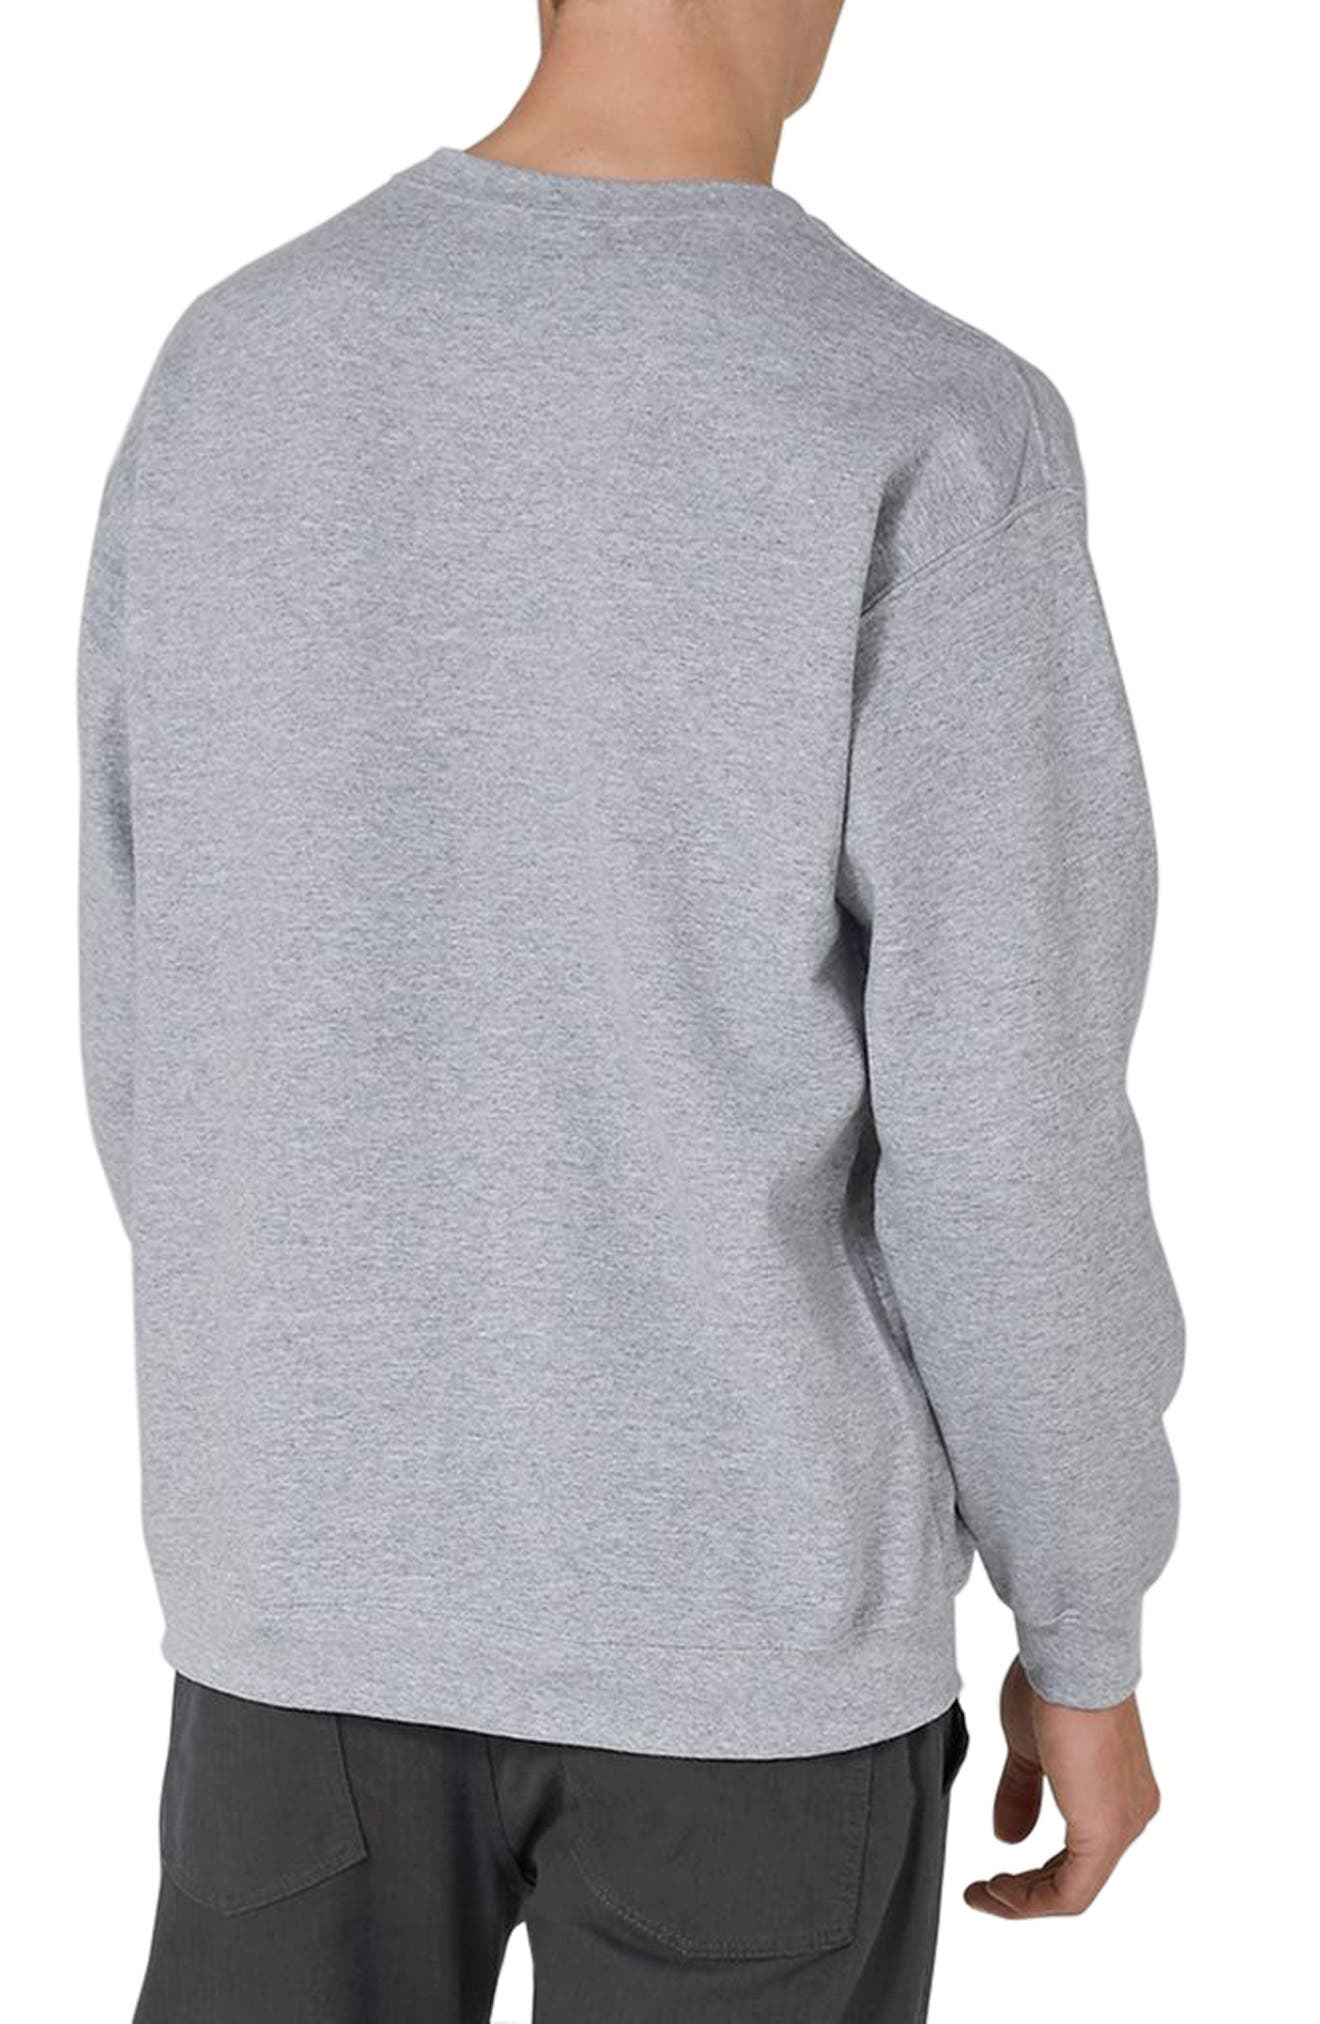 Rose Embroidered Sweatshirt,                             Alternate thumbnail 2, color,                             050